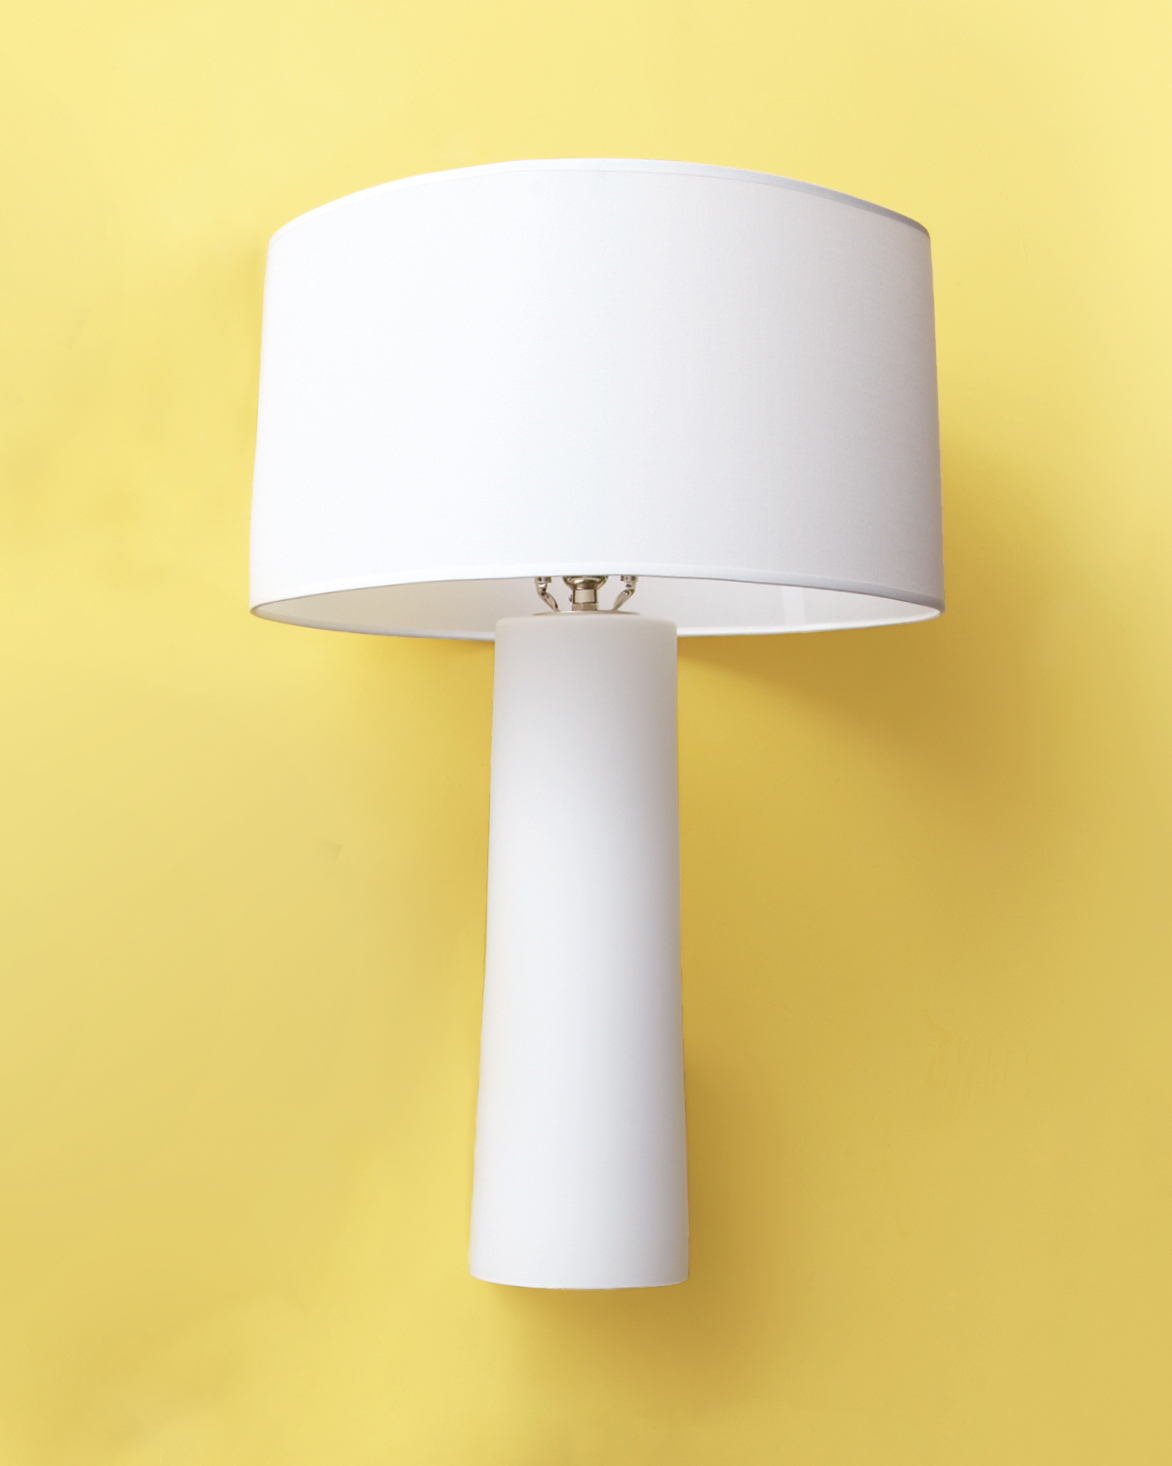 angel-sanchez-lamp-mwd108878.jpg